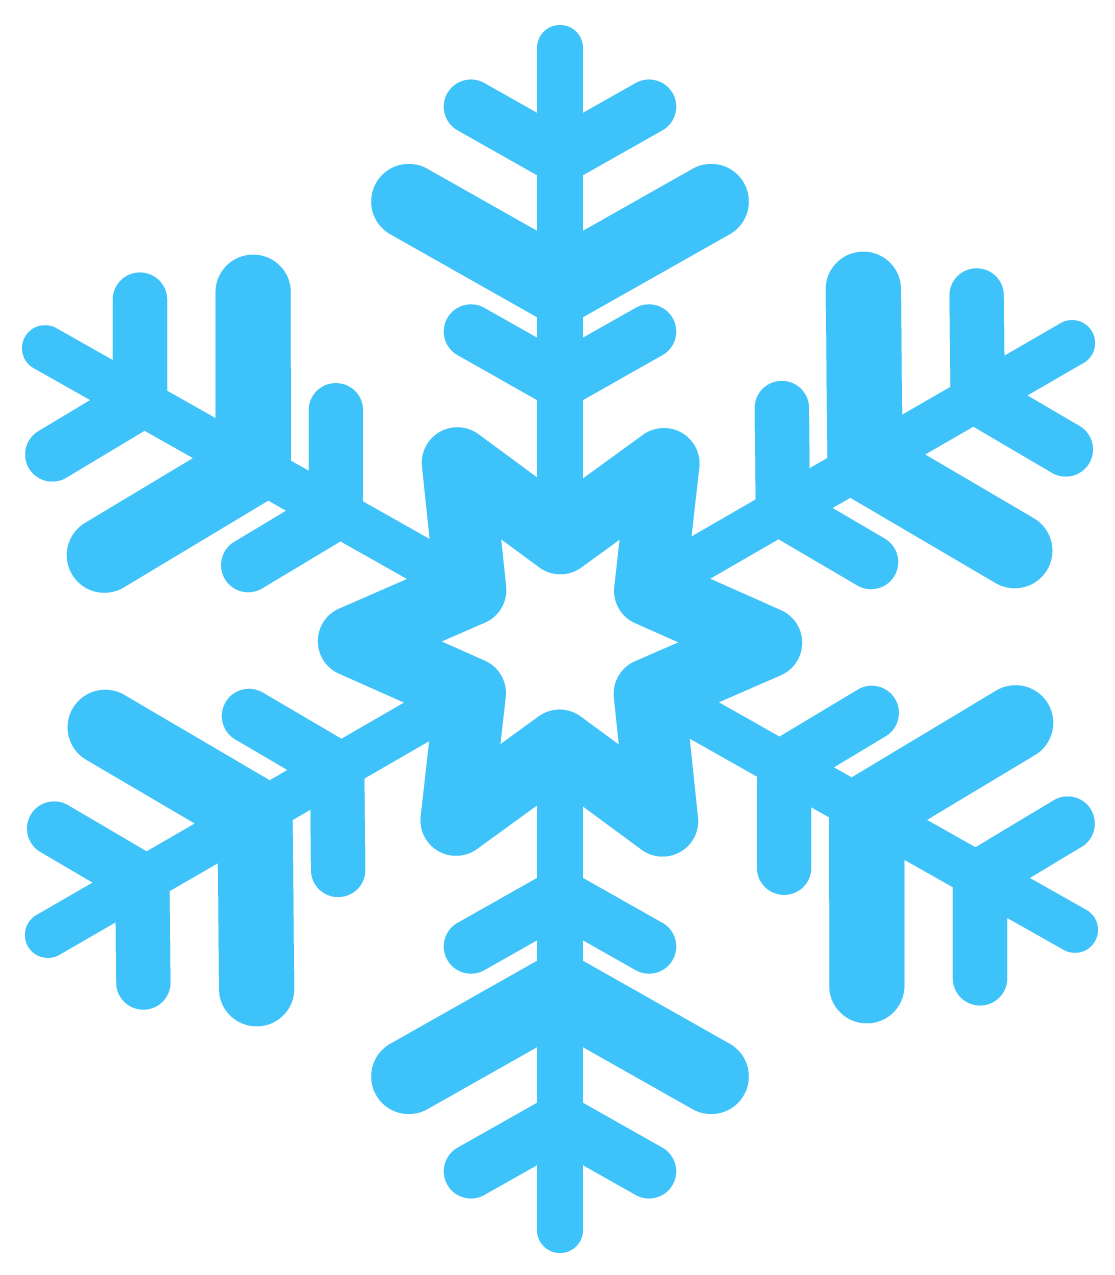 Pink and blue snowflake clipart clip stock Snowflakes Transparent PNG Pictures - Free Icons and PNG Backgrounds clip stock